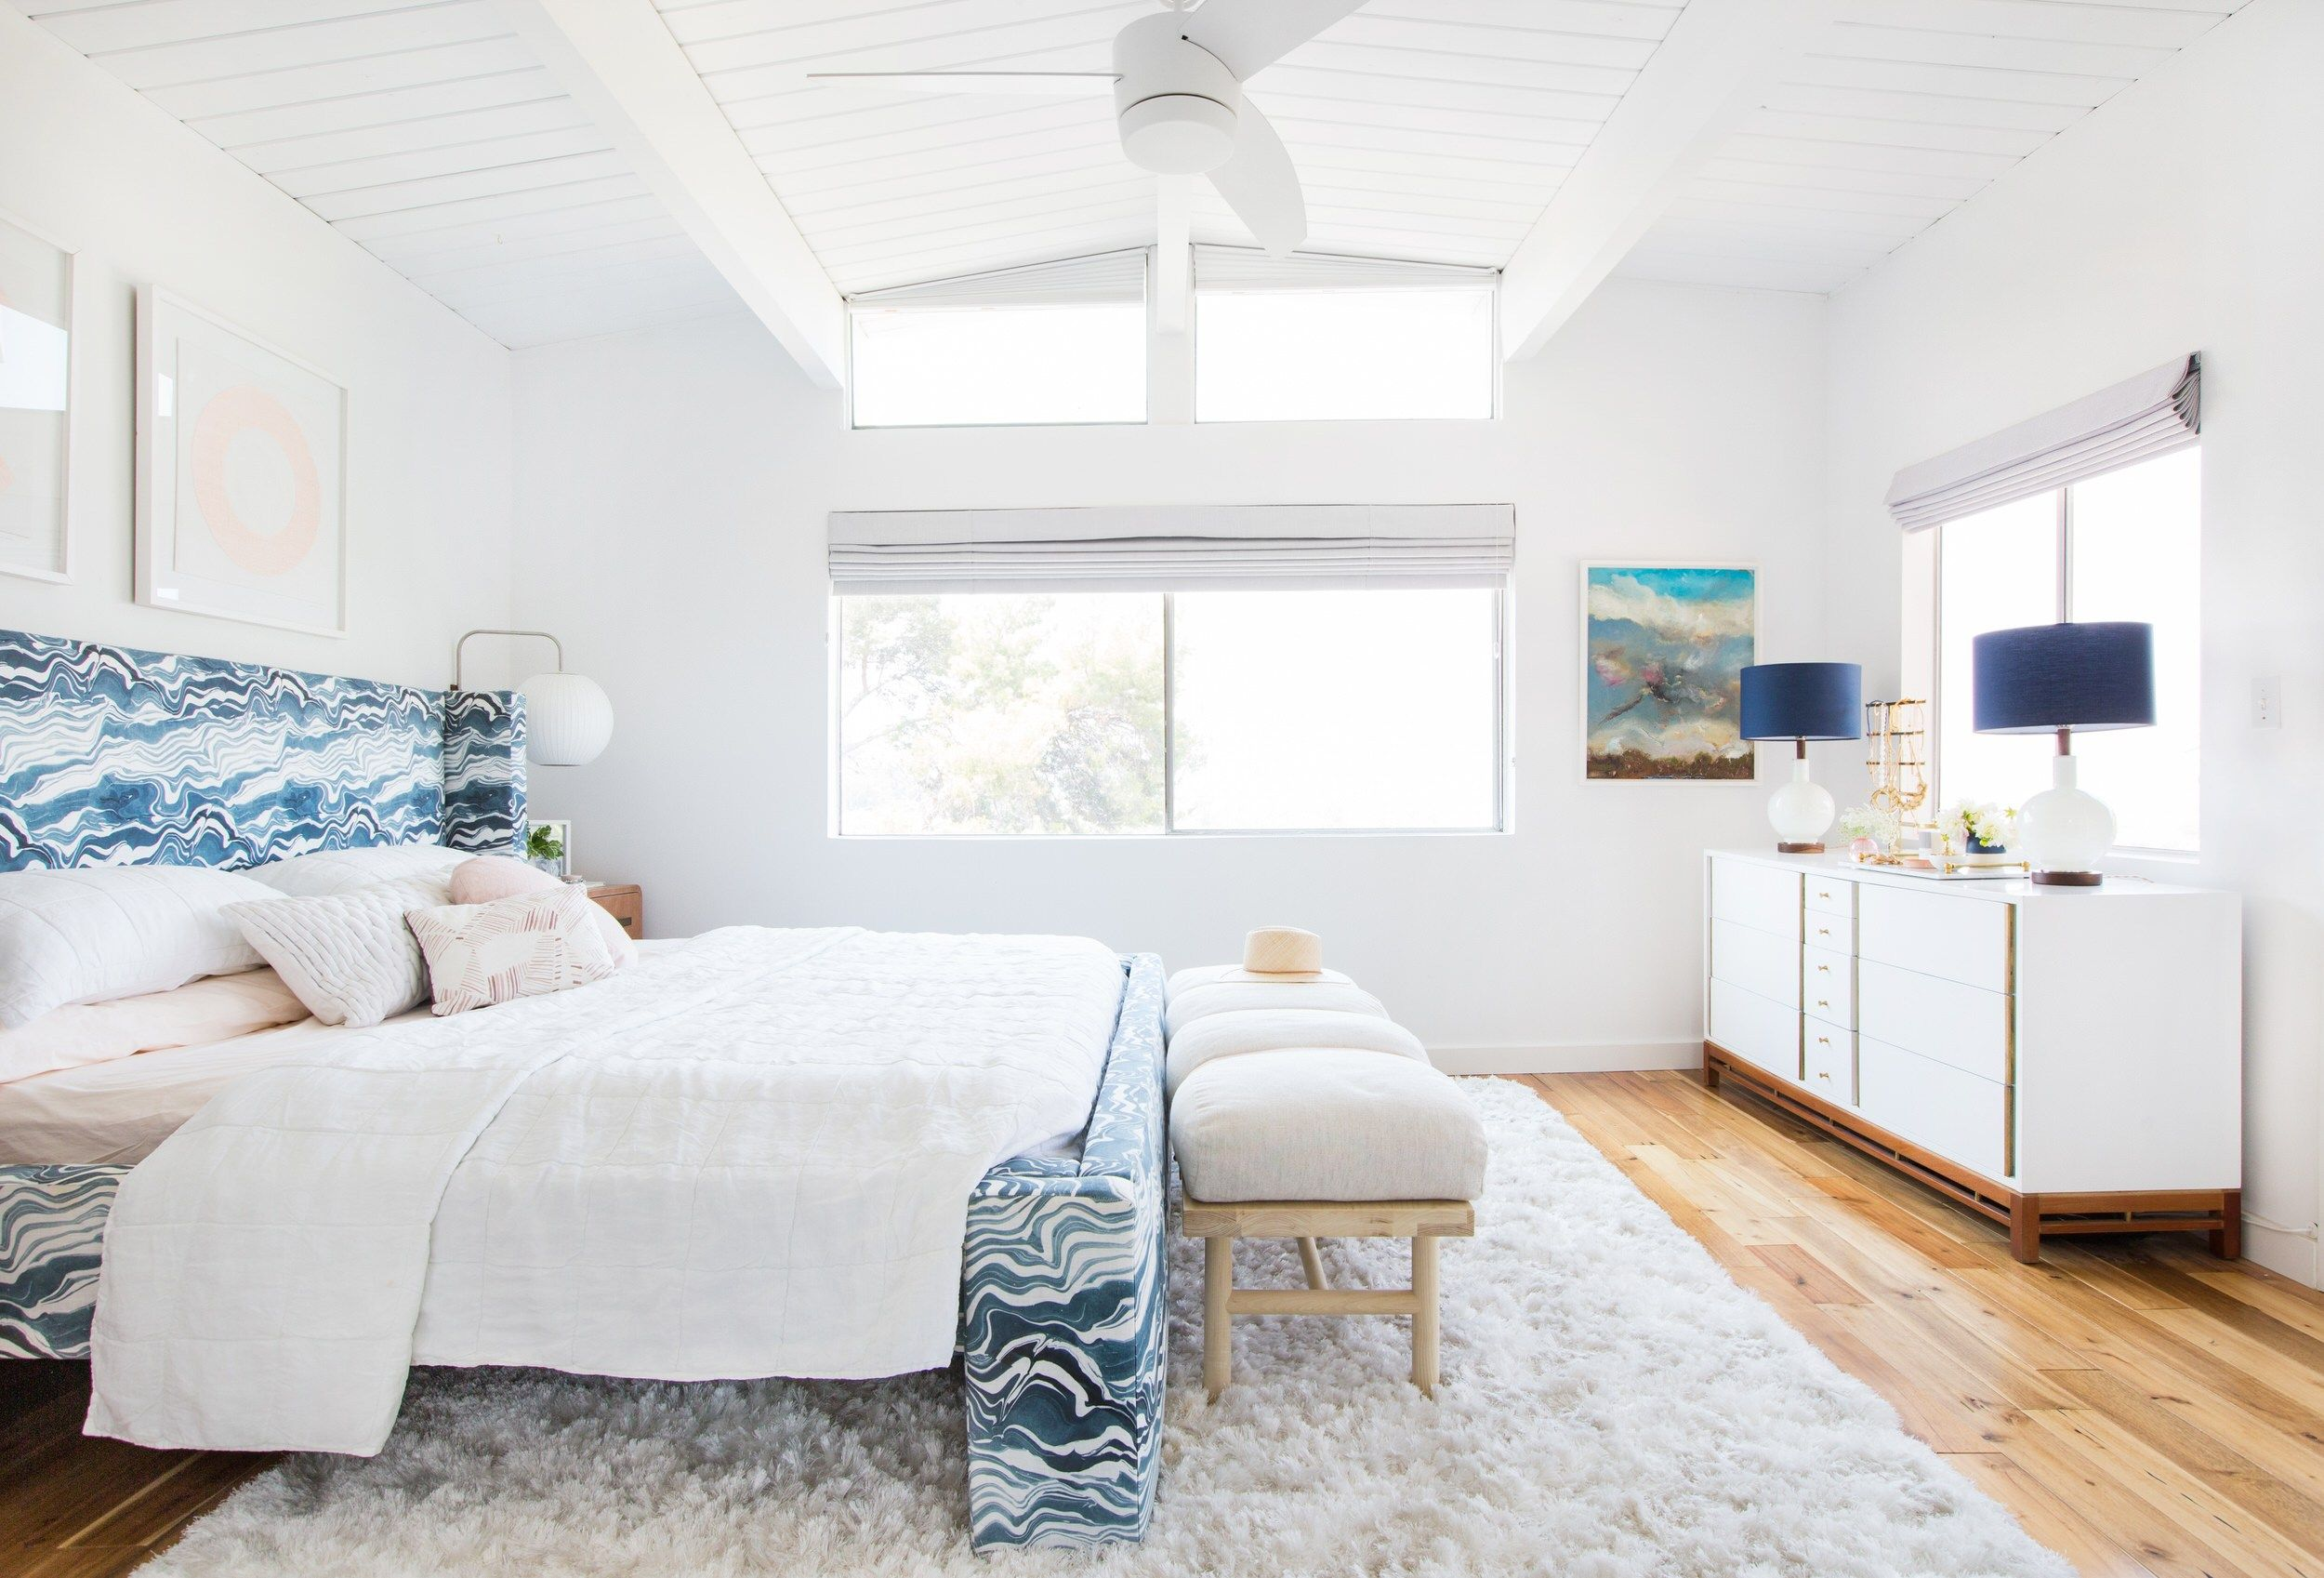 Let's Talk About Picking Out A Ceiling Fan Bedroom